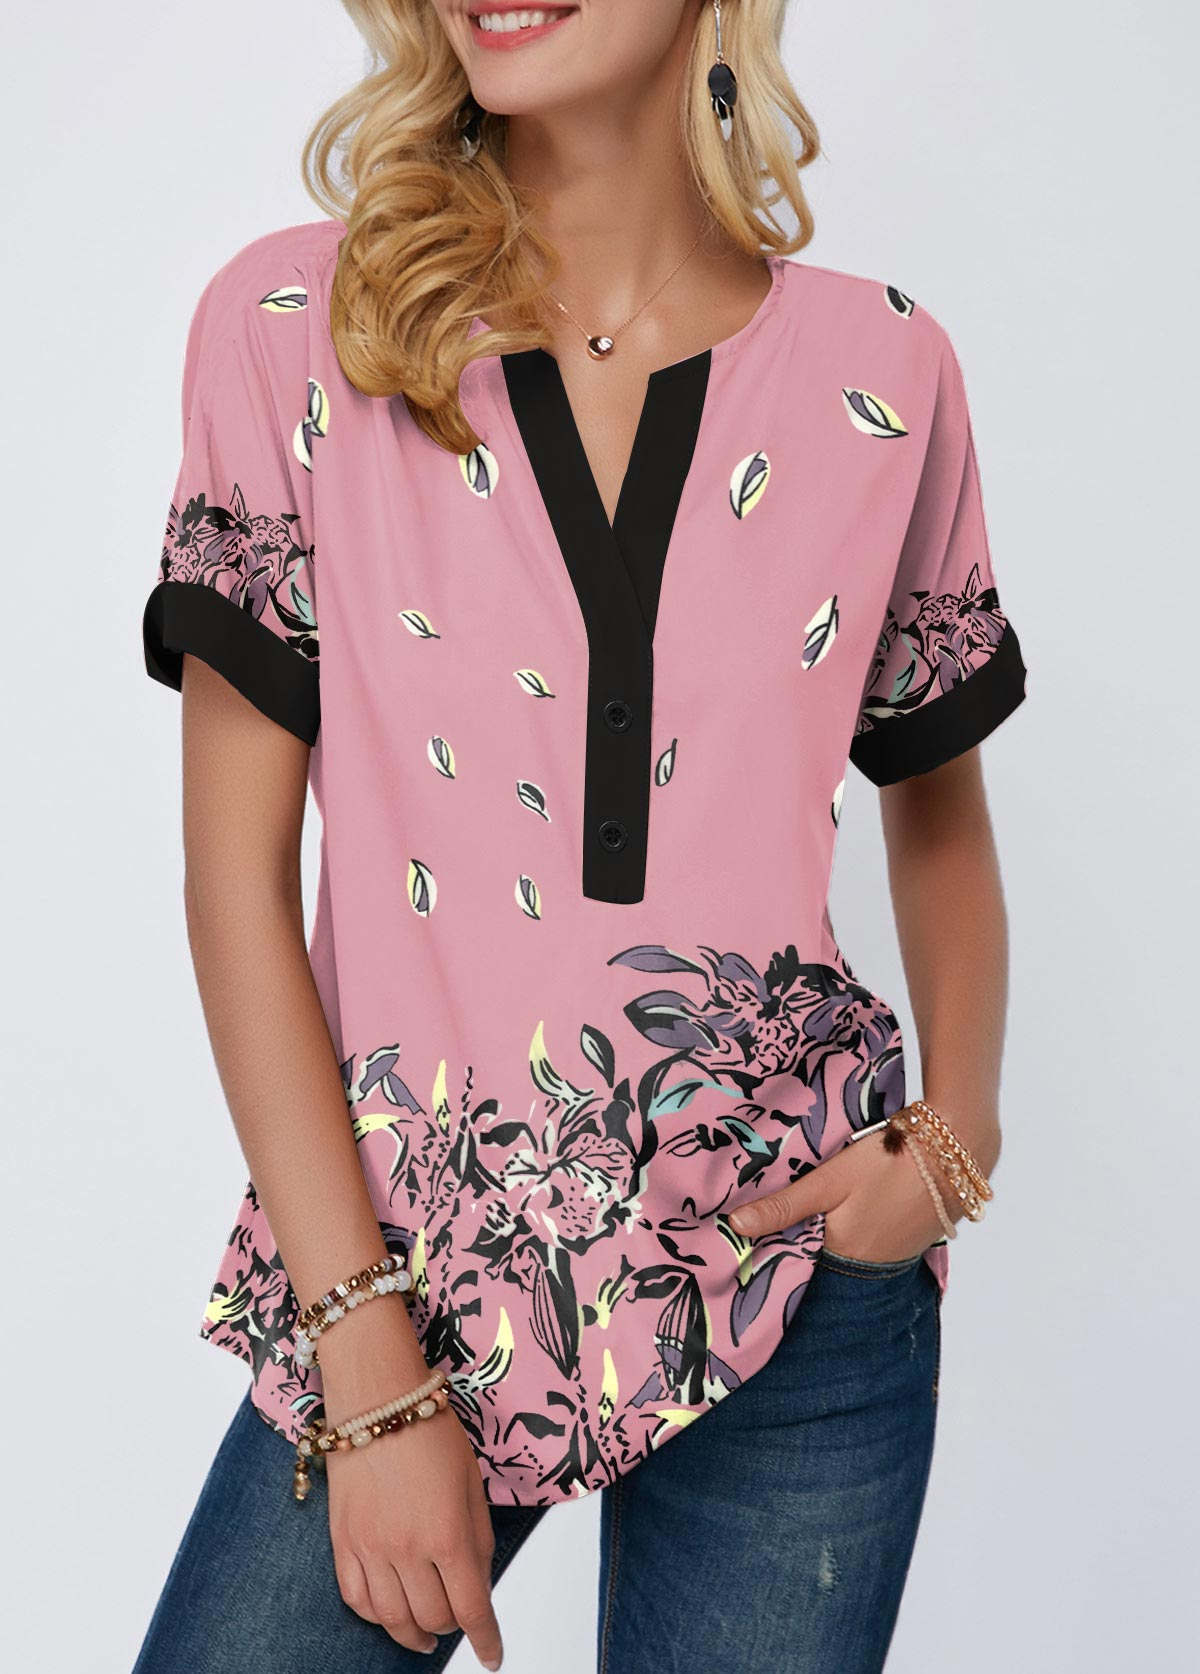 Notch Neck Floral Print Contrast Piping T Shirt